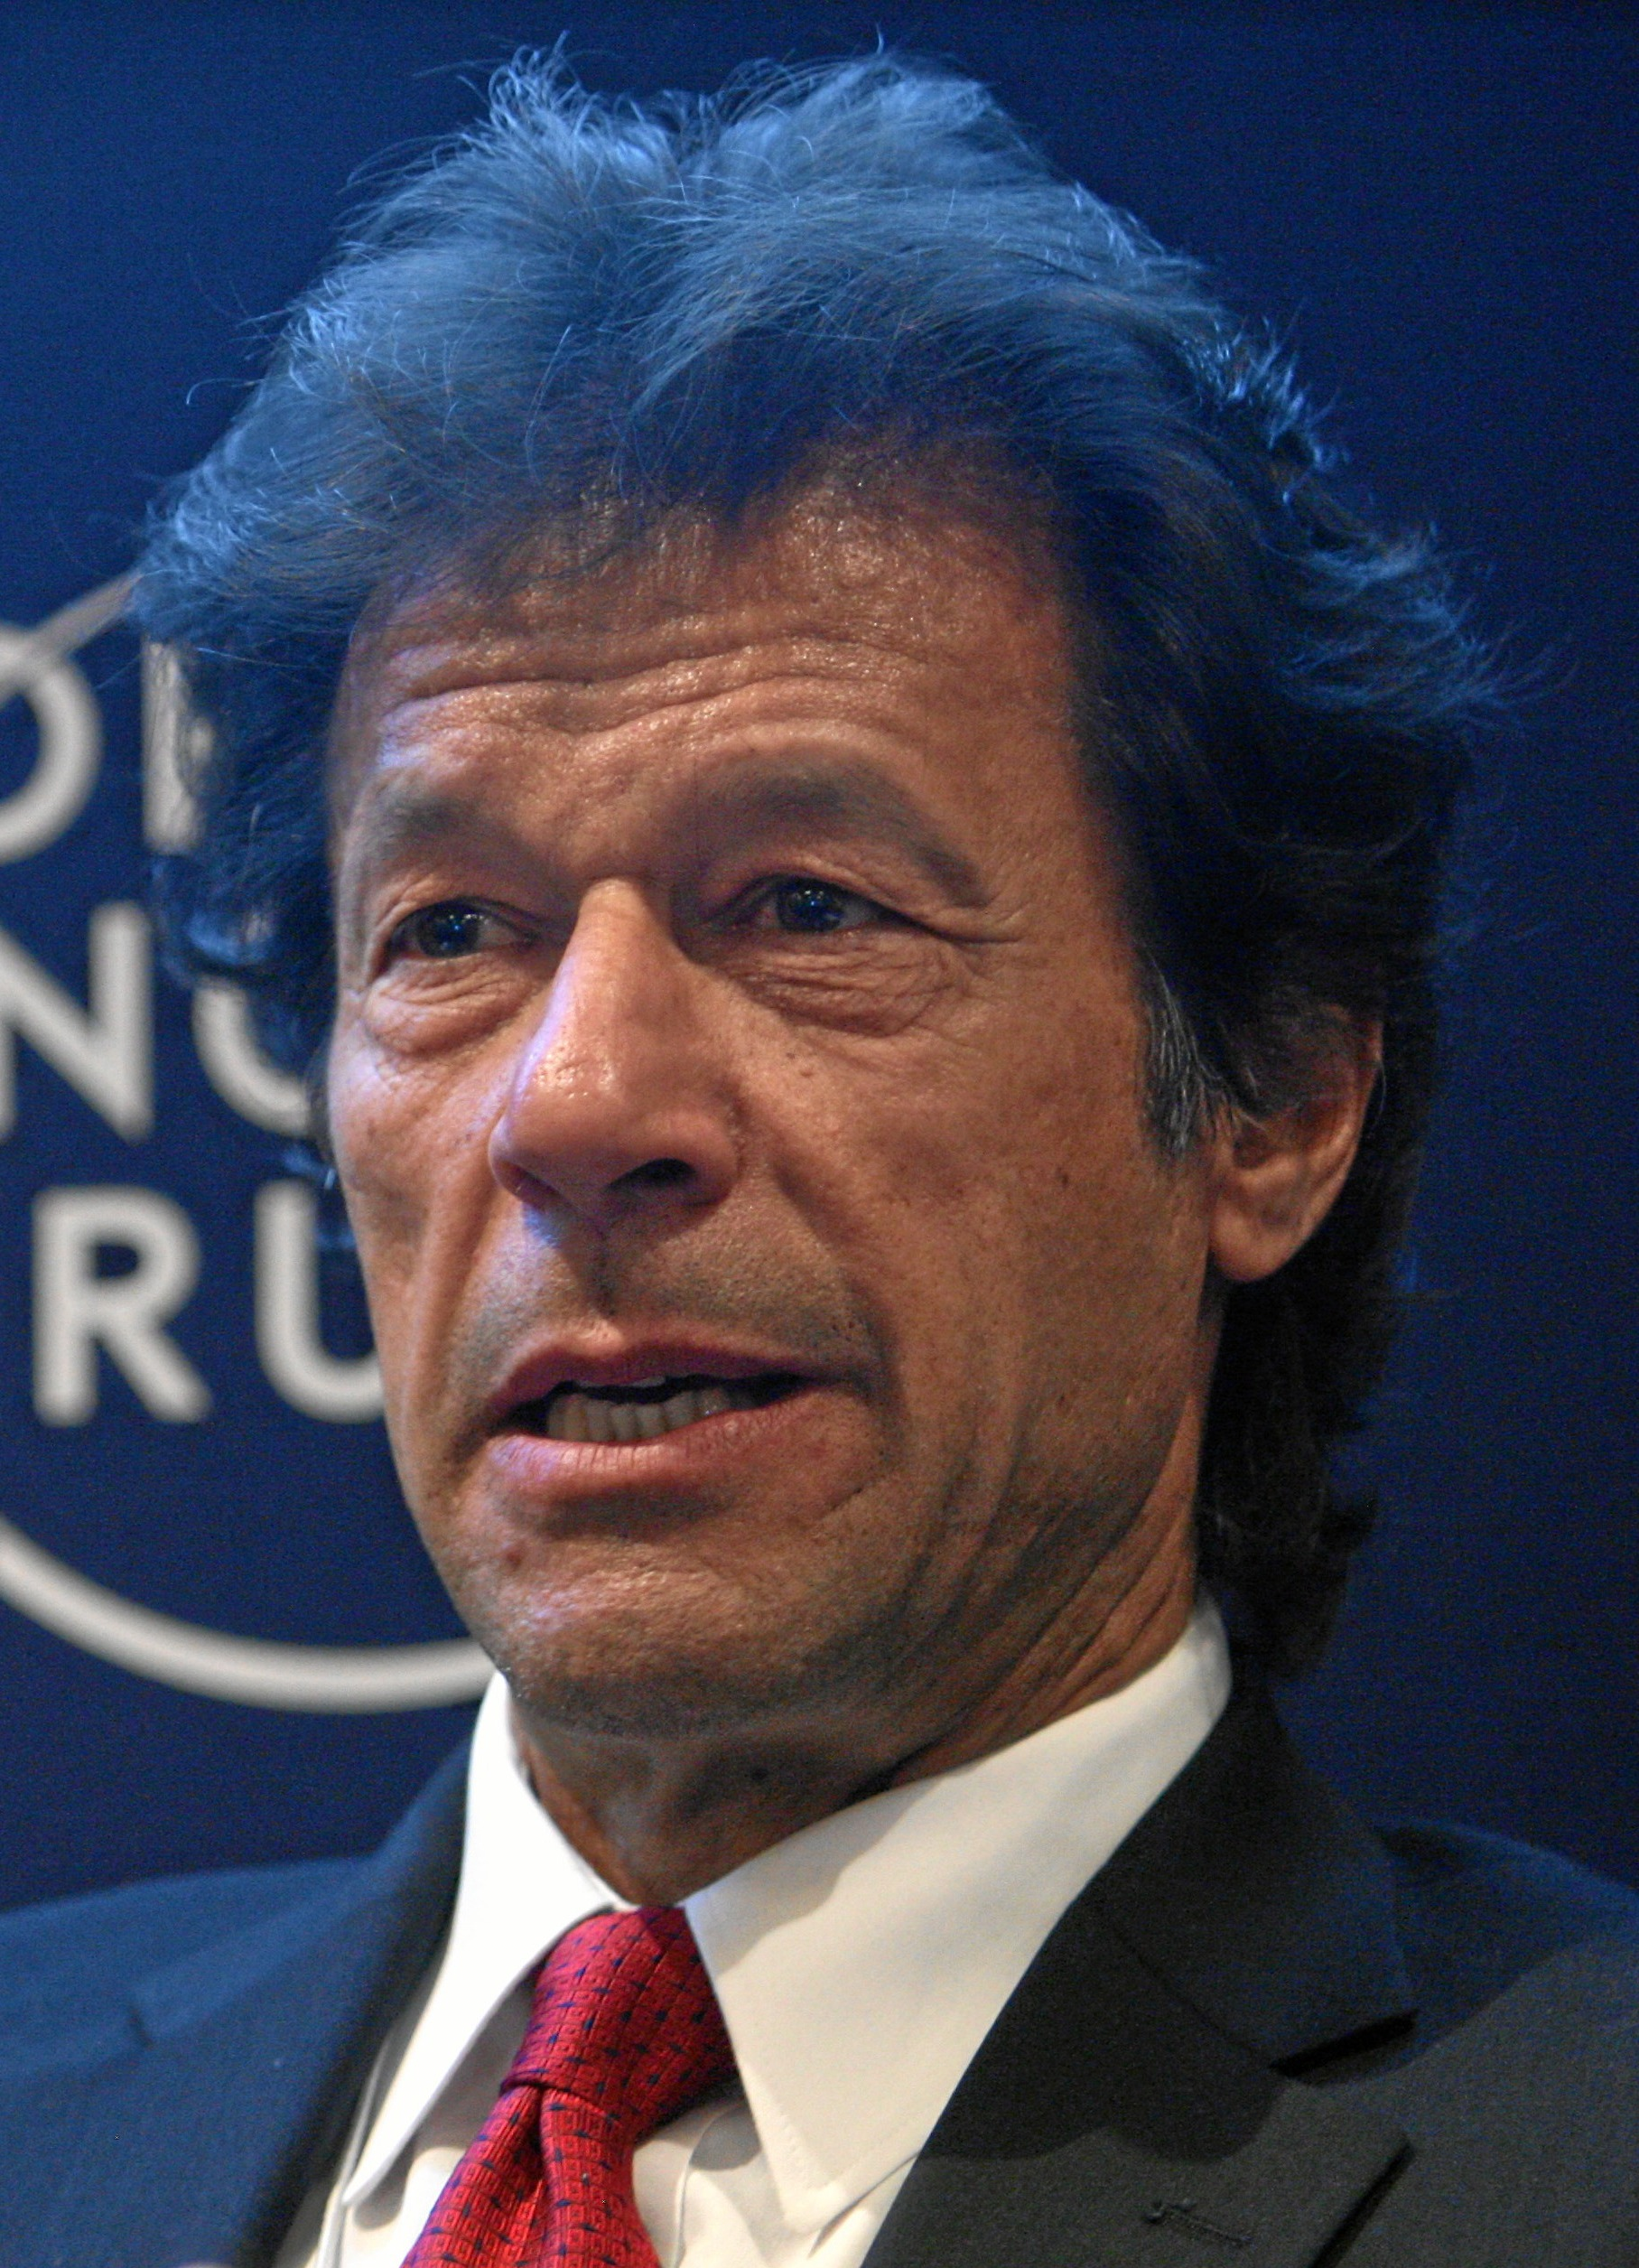 The 35-year old son of father Rajendranath Zutshi and mother Nuzhat Khan Imran Khan in 2018 photo. Imran Khan earned a  million dollar salary - leaving the net worth at 15 million in 2018